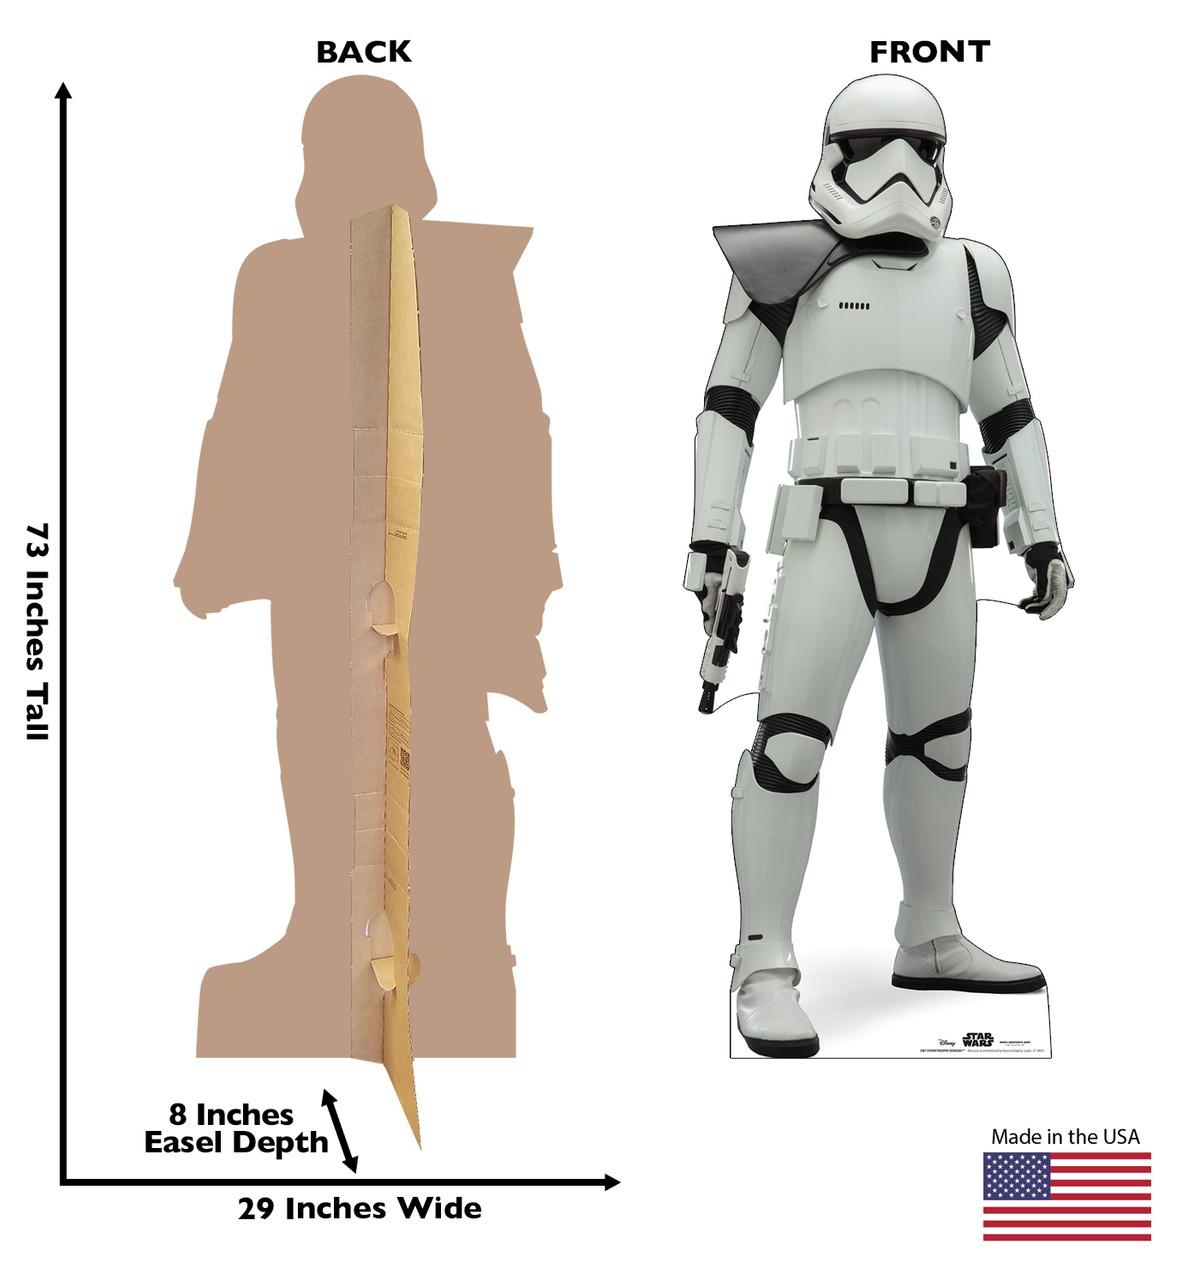 Life-size cardboard standee of Stormtrooper Sergeant™ (Star Wars IX) with back and front dimensions.